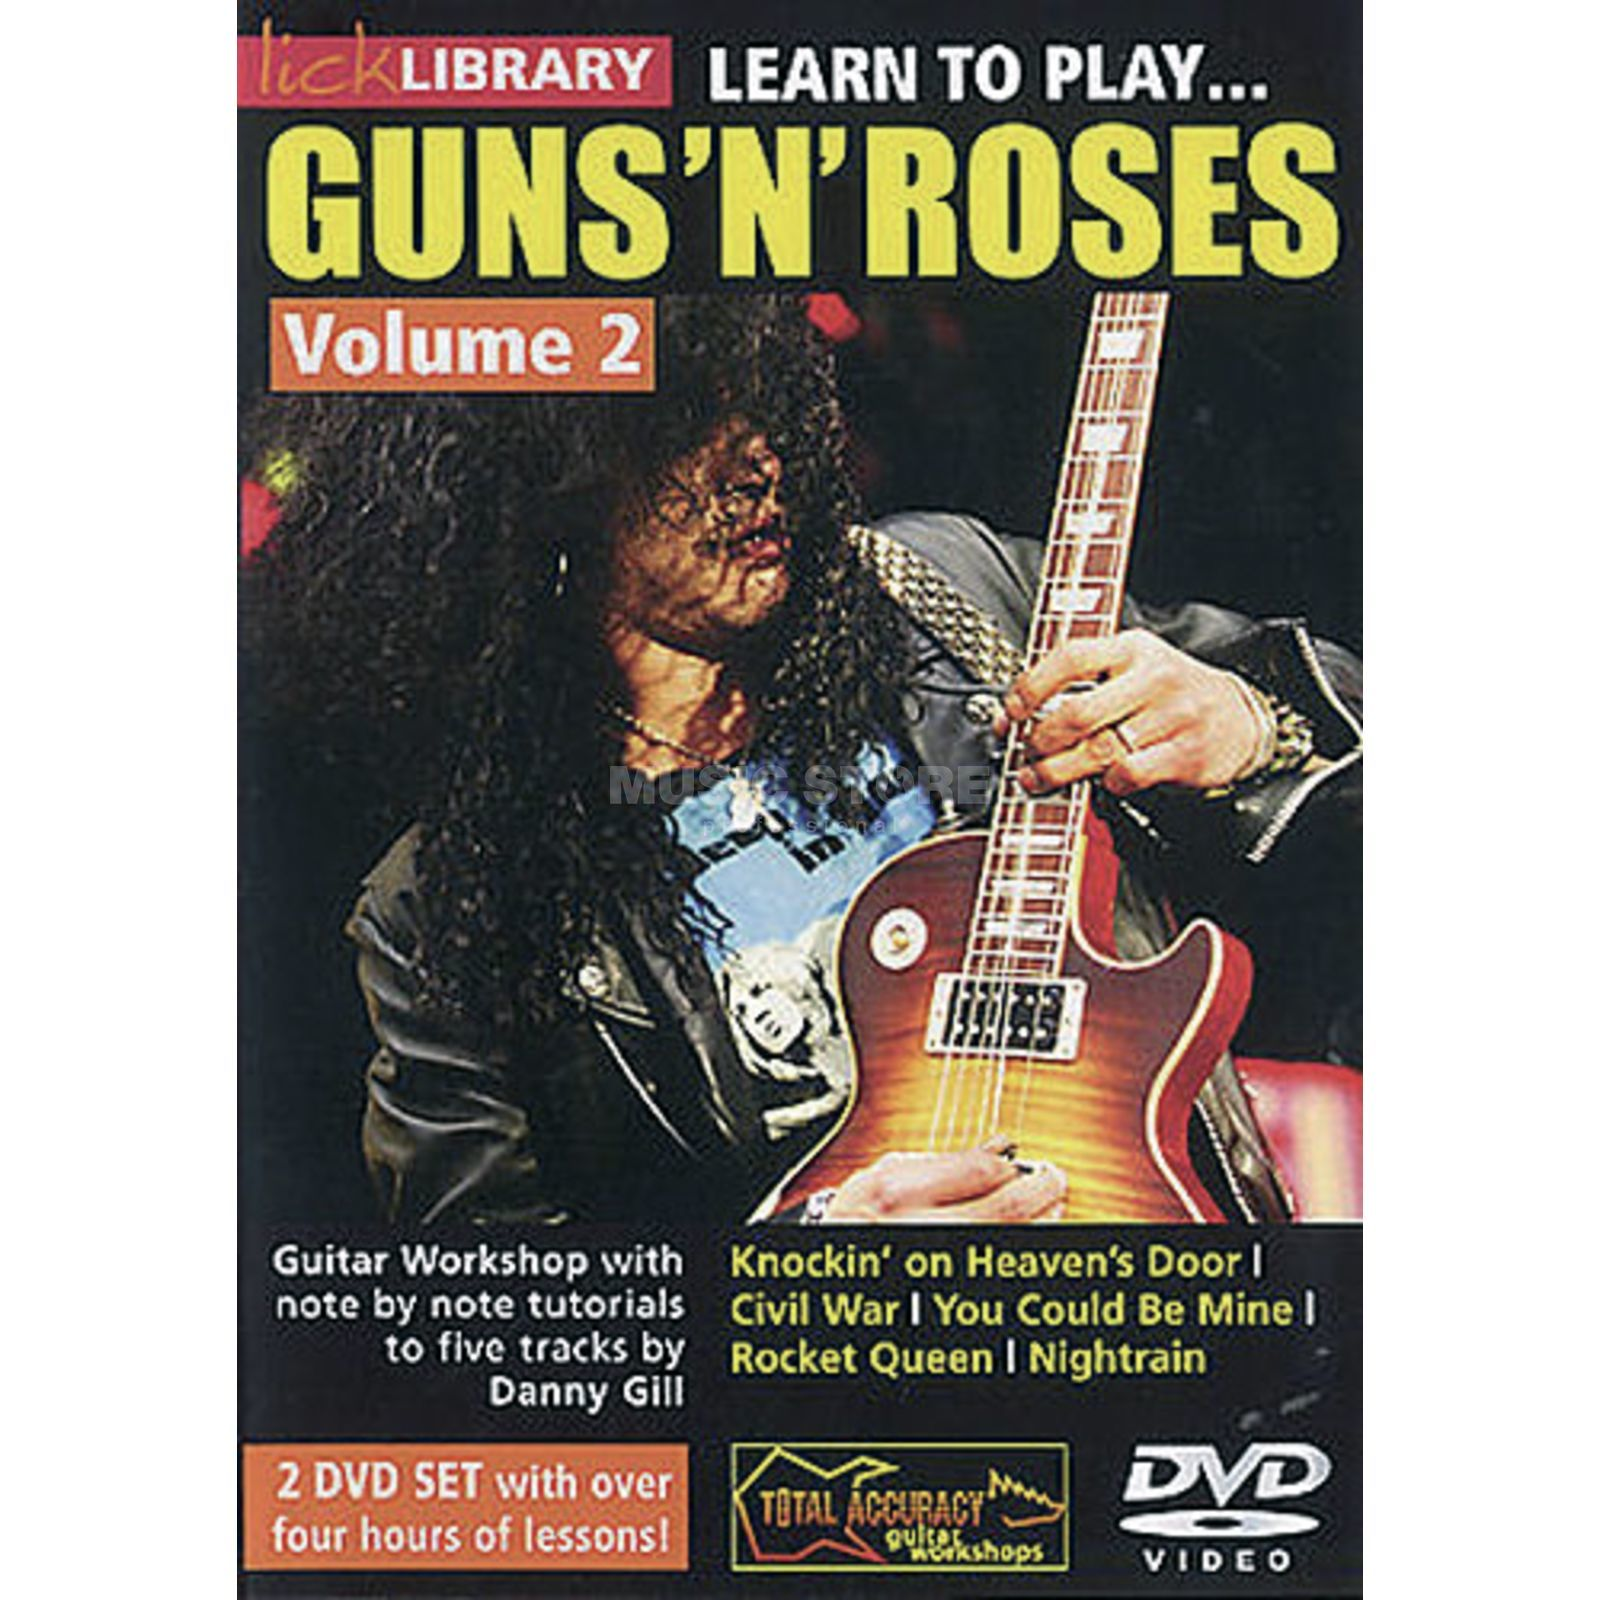 Roadrock International Lick Library: Learn To Play Guns 'N' Roses 2 DVD Produktbild